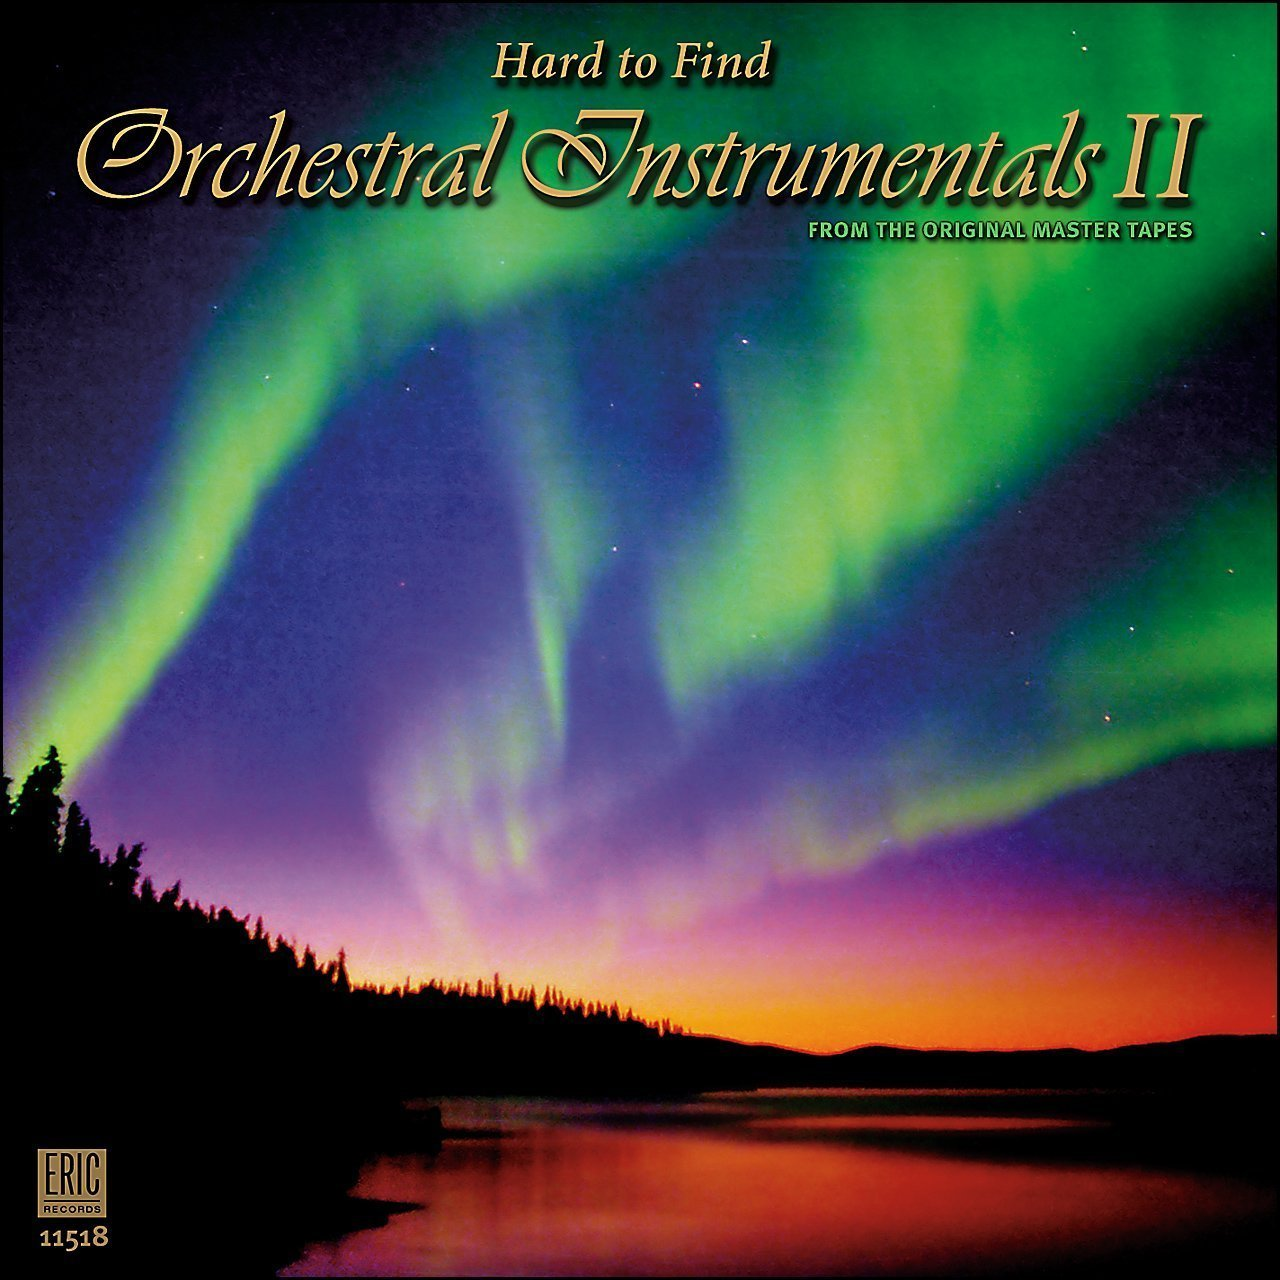 Hard to Find Orchestral Instrumentals II by Unknown